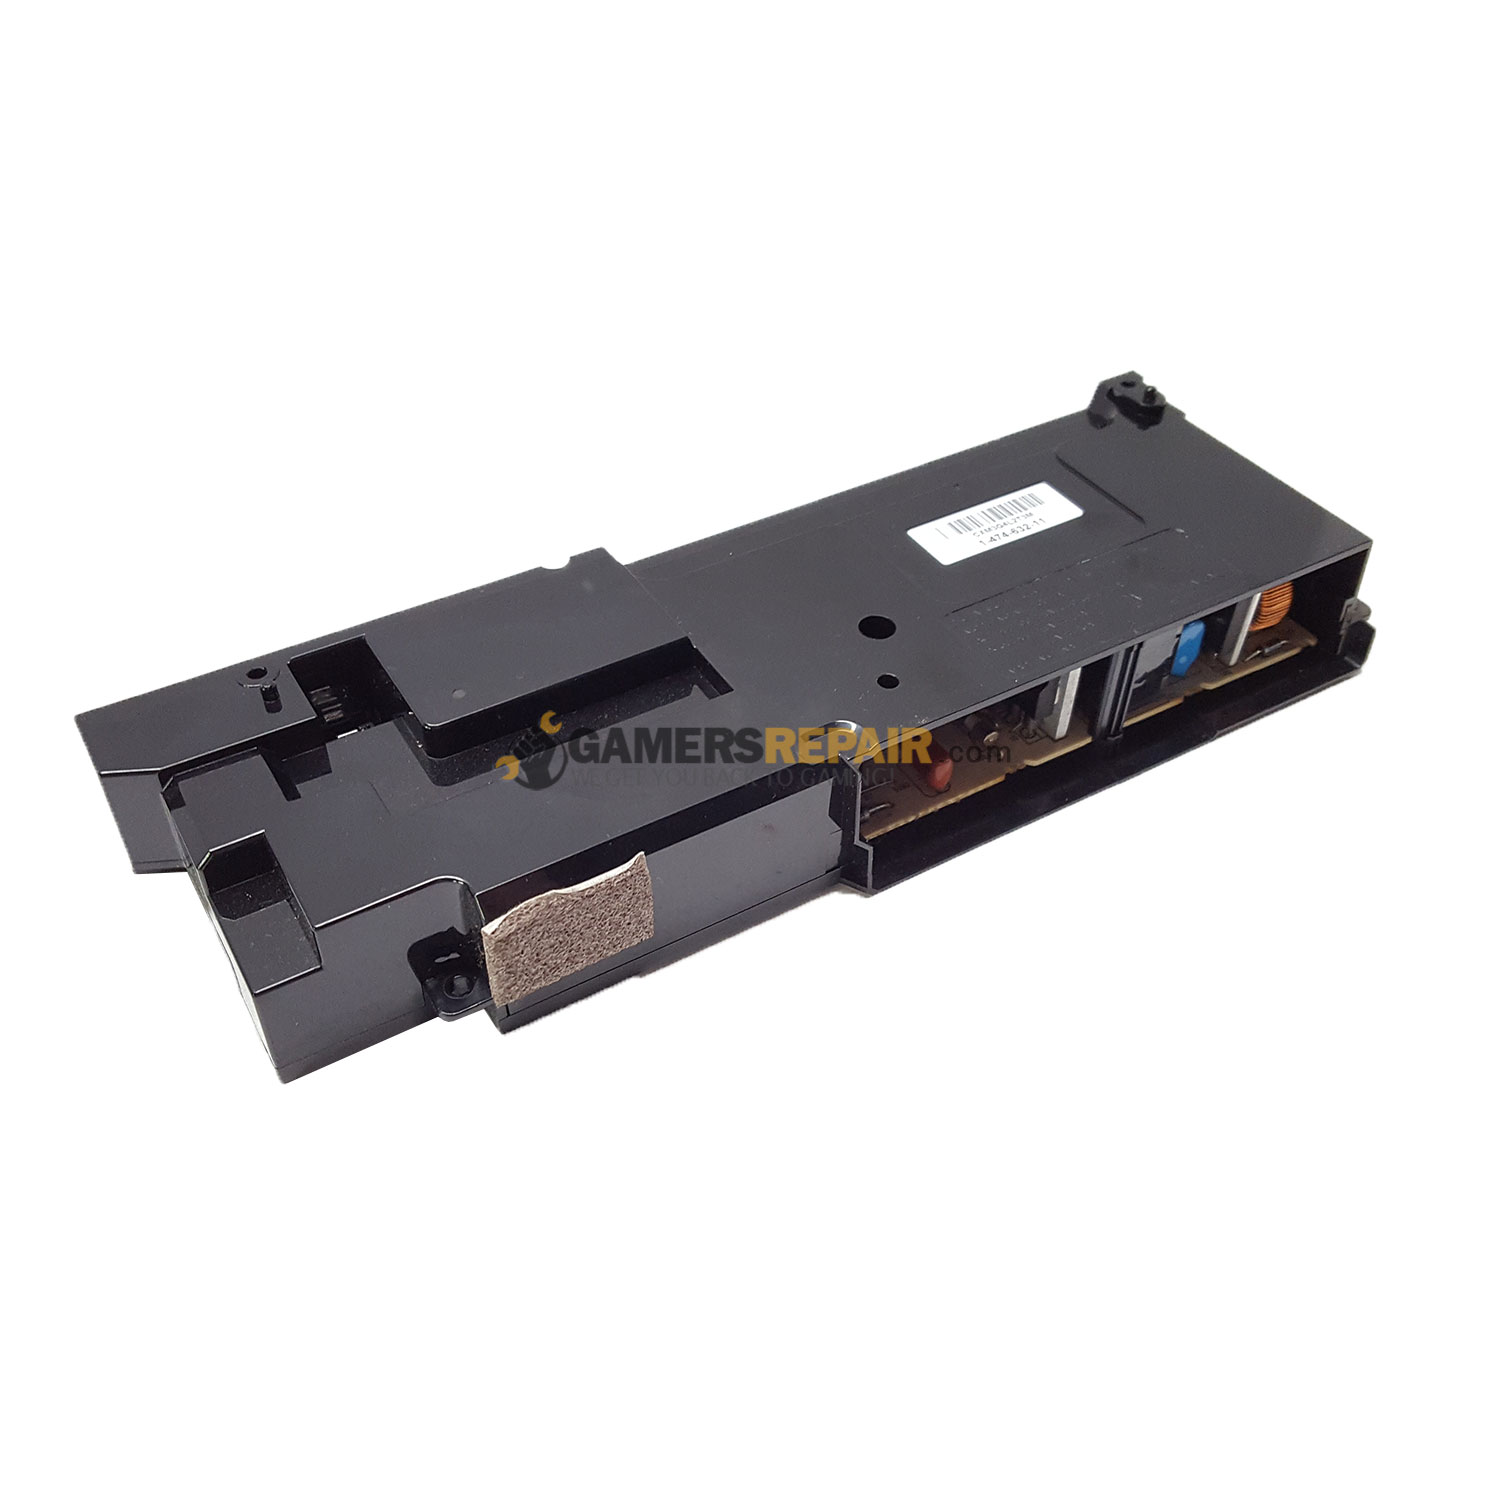 ps4-power-supply-n14-200p1a-2.jpg